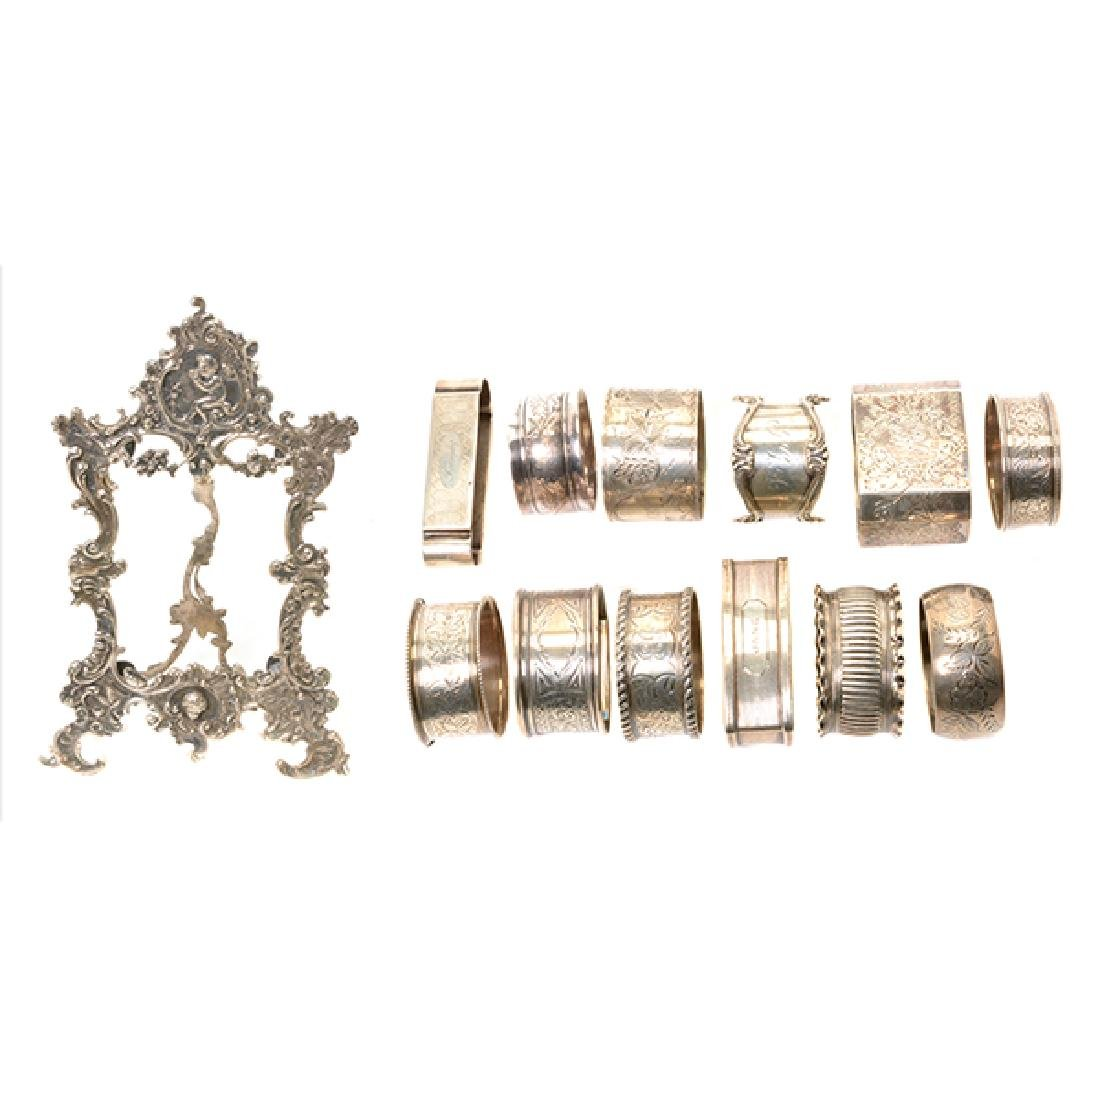 Eleven English Sterling Napkin Rings and Rococo Style